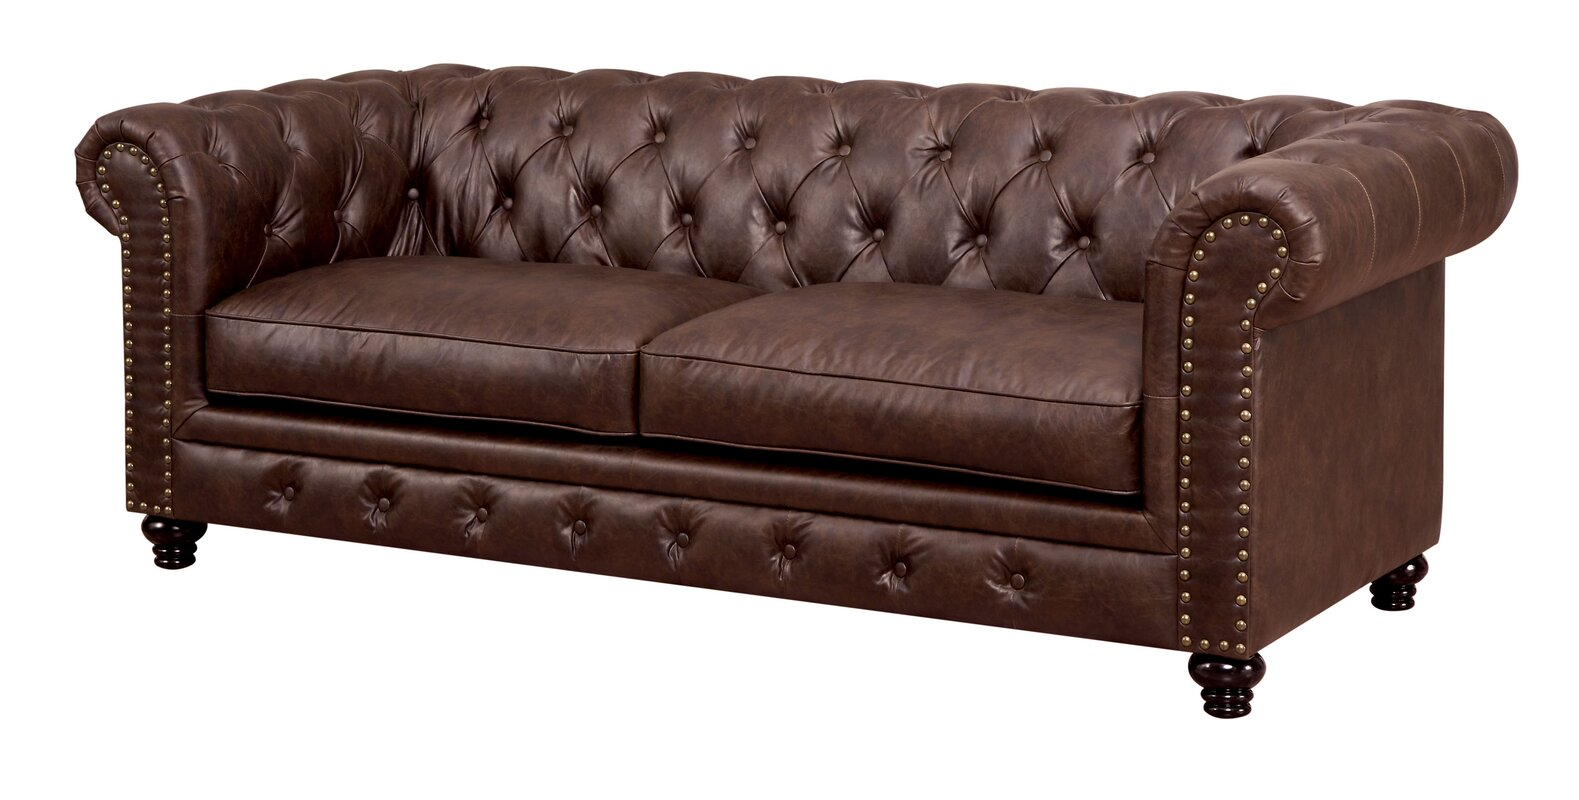 Lindstrom Chesterfield Sofa